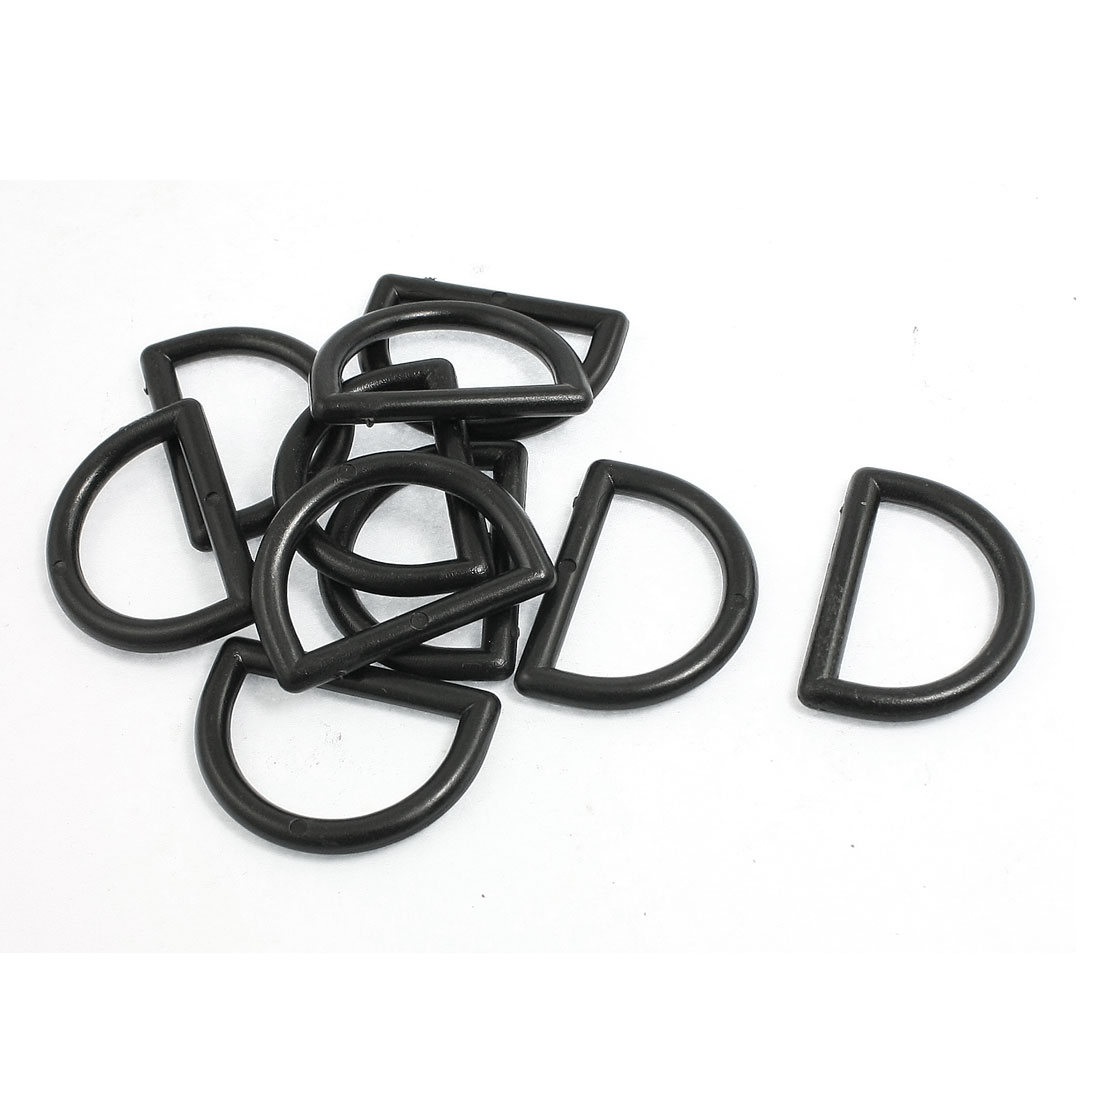 "1"" Repair Parts Black Plastic D Ring Buckle for Backpack Bag 10 Pcs"